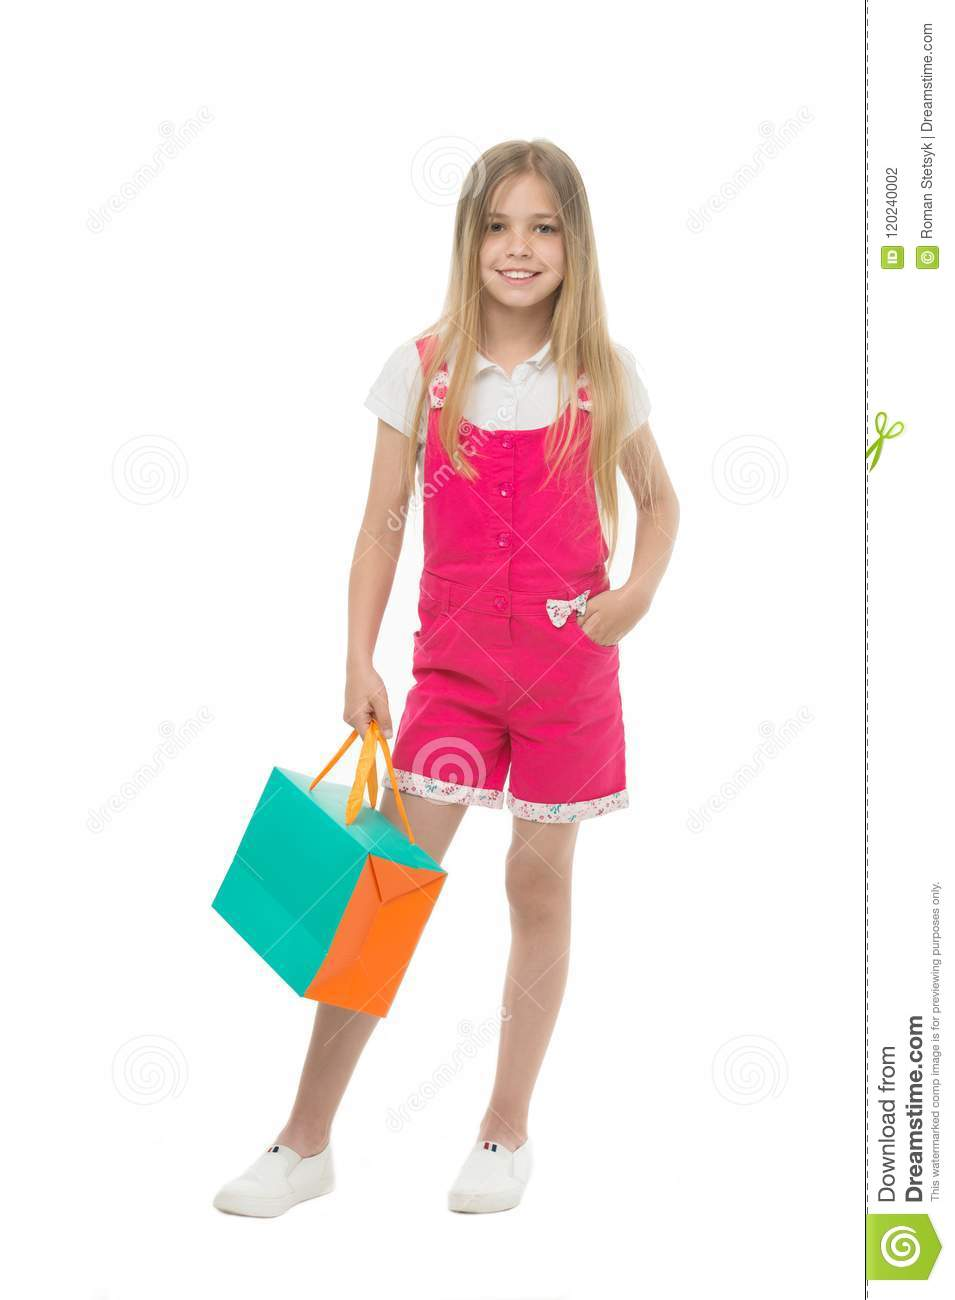 6faa11146e79 Kids designer clothing summer sale. Girl cute teenager carries shopping  bag. Kid bought clothing